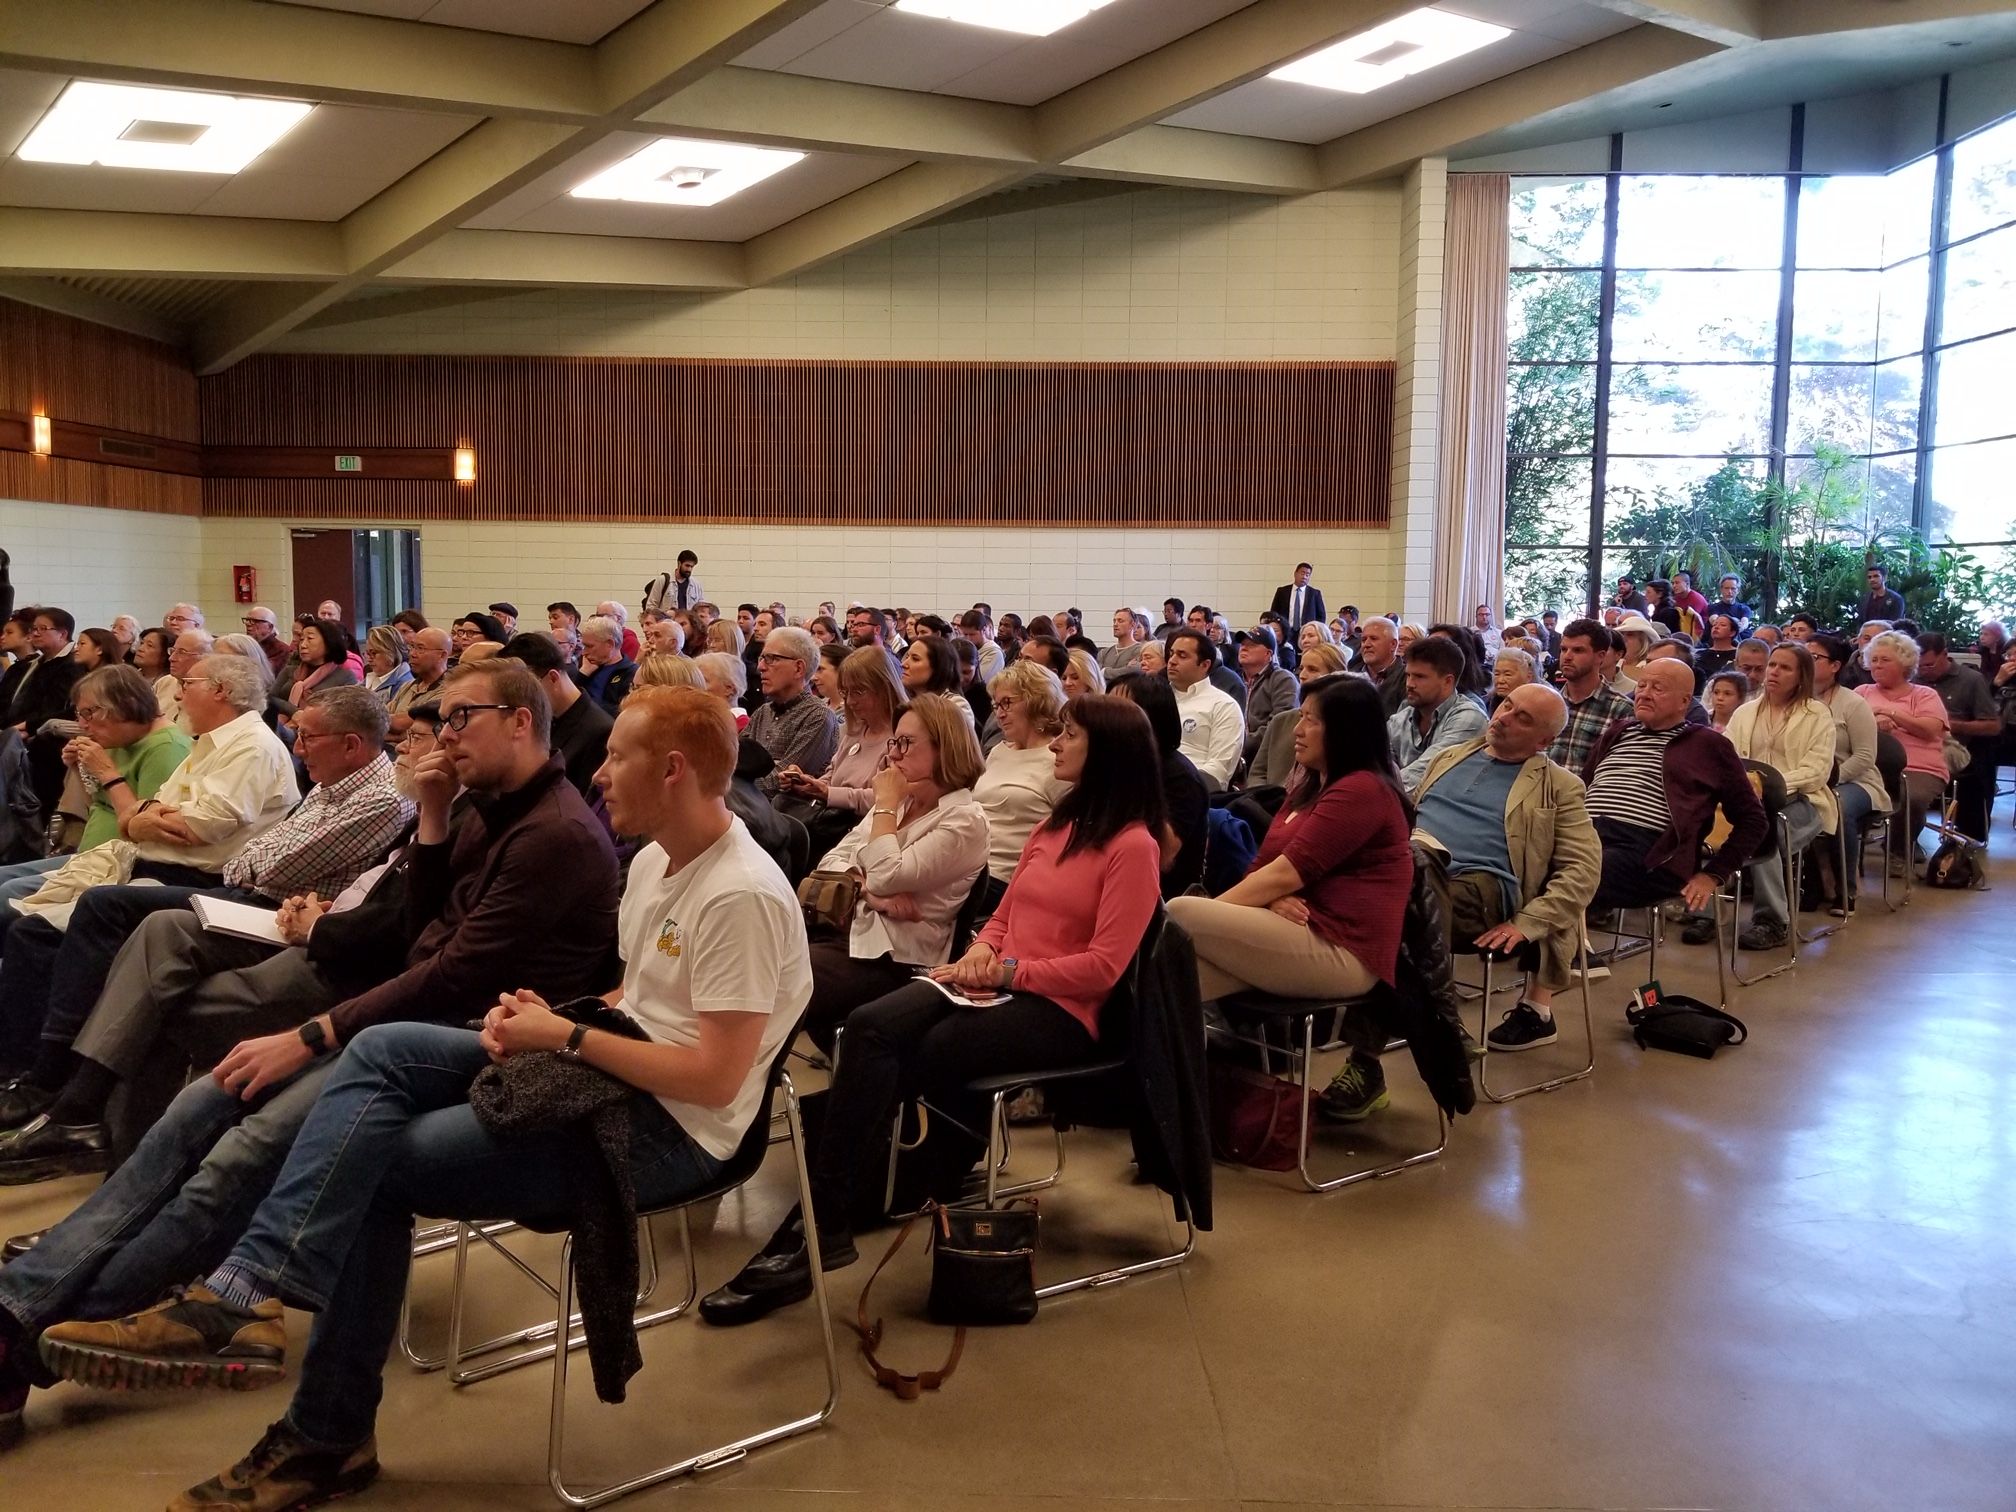 A packed house at the County Fair Building in Golden Gate Park on August 7, 2019.